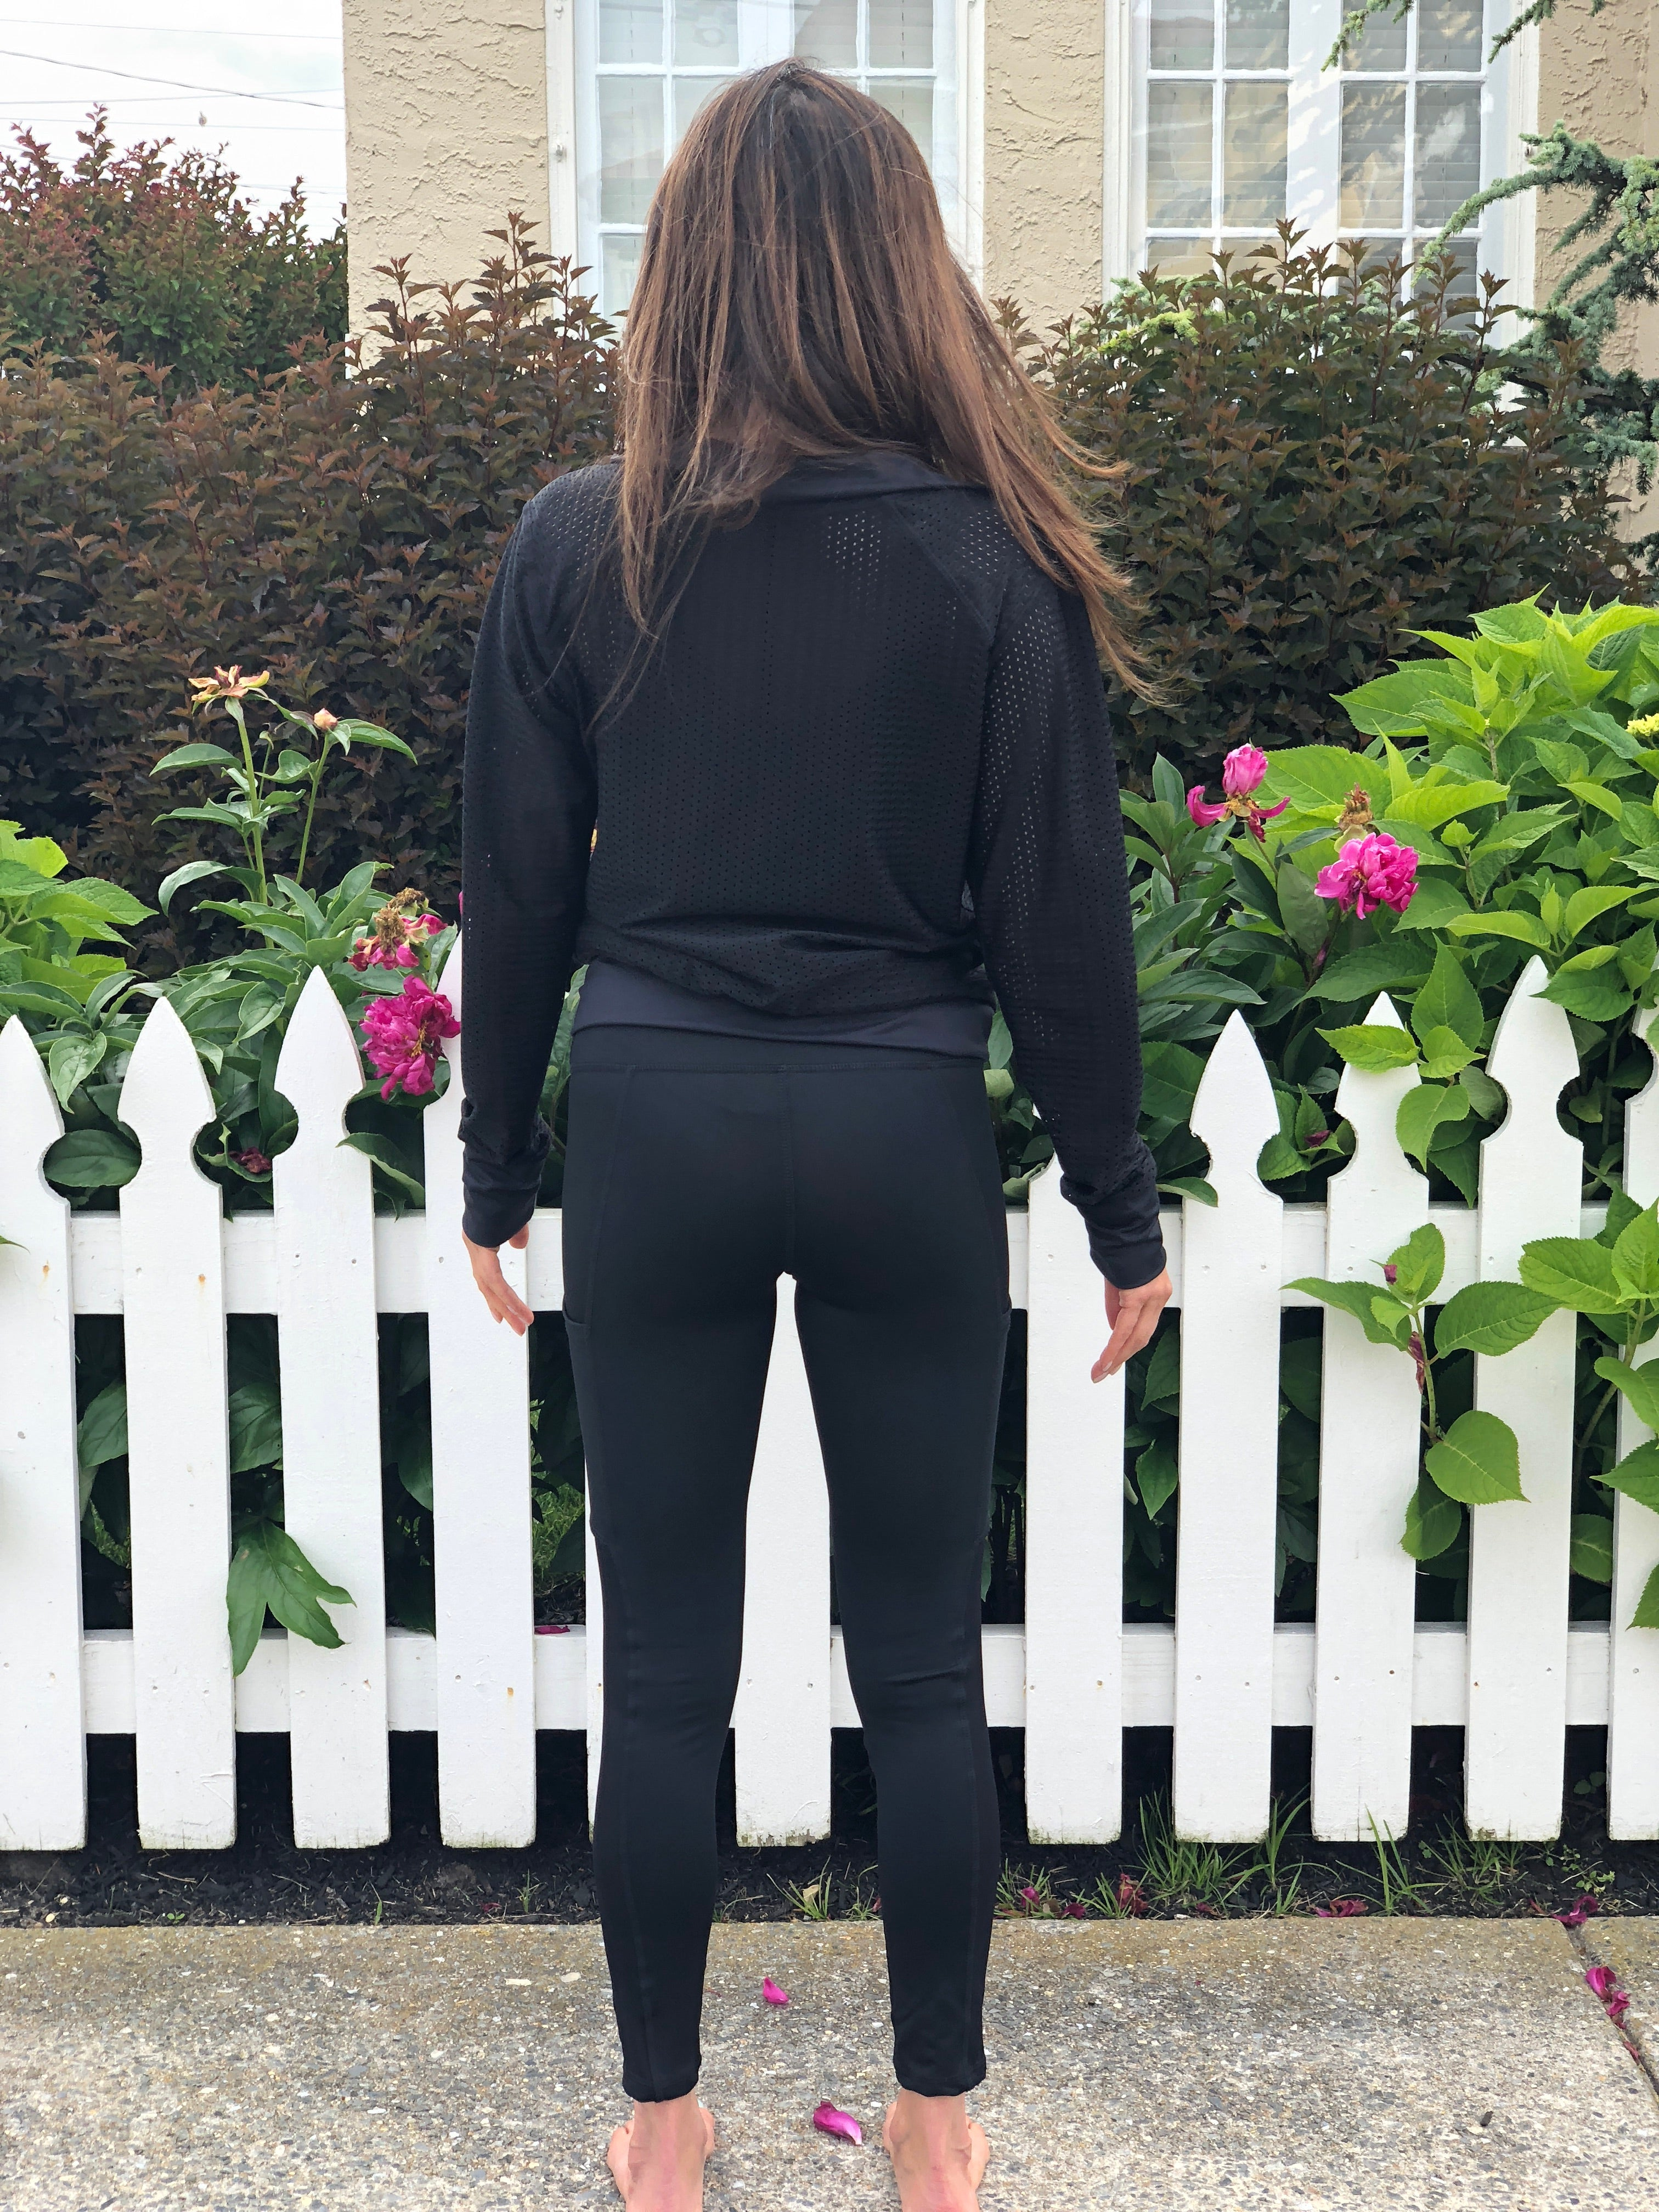 182f1c9d837e3 ... Yoga Pants With Pockets - Black Mesh Yoga Pants with Cell Phone Pocket